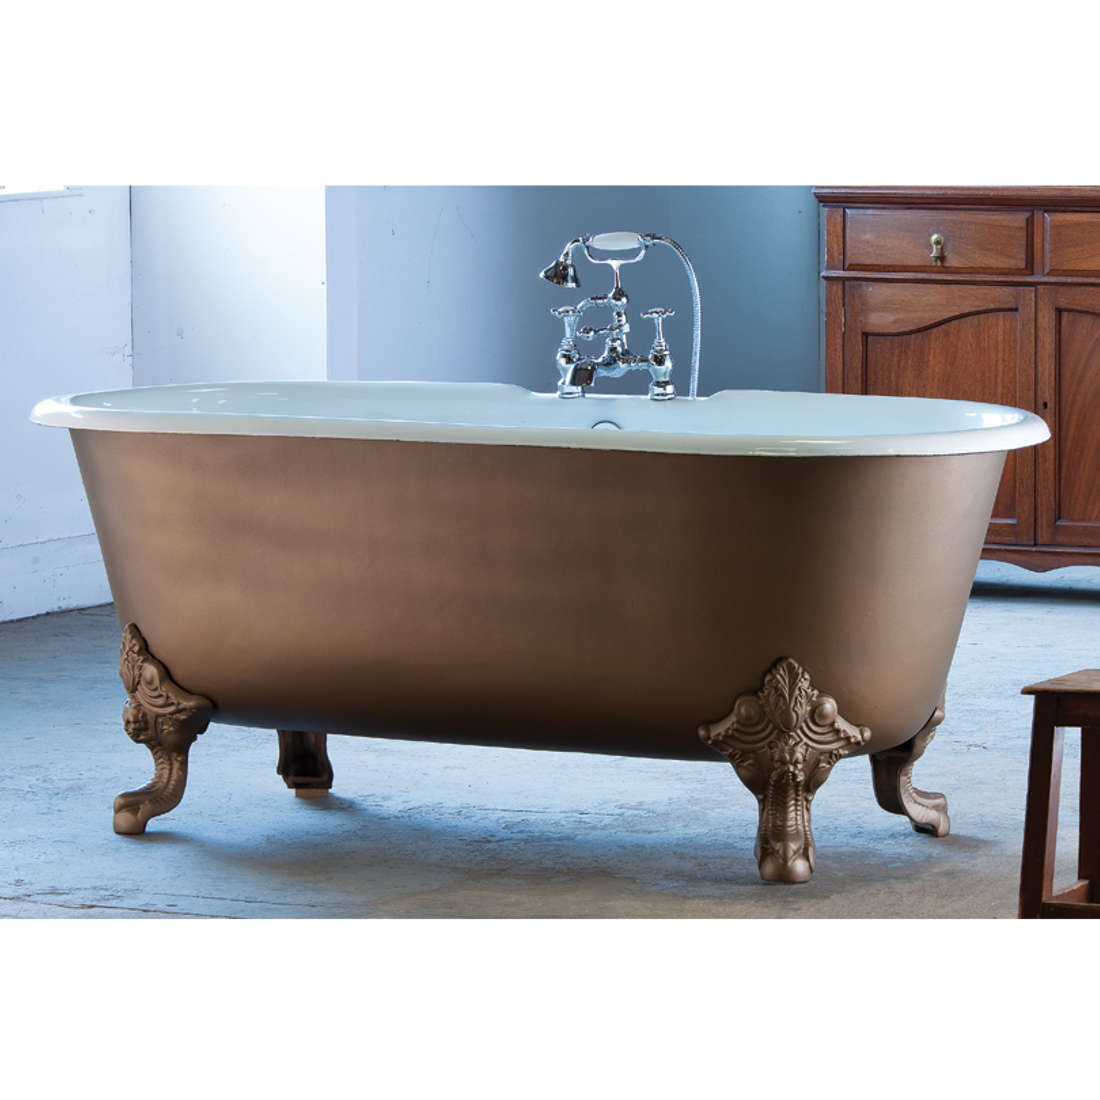 An image of Arroll Baths - The Cheverny Bath - Roll Top Bath - Blue Jade